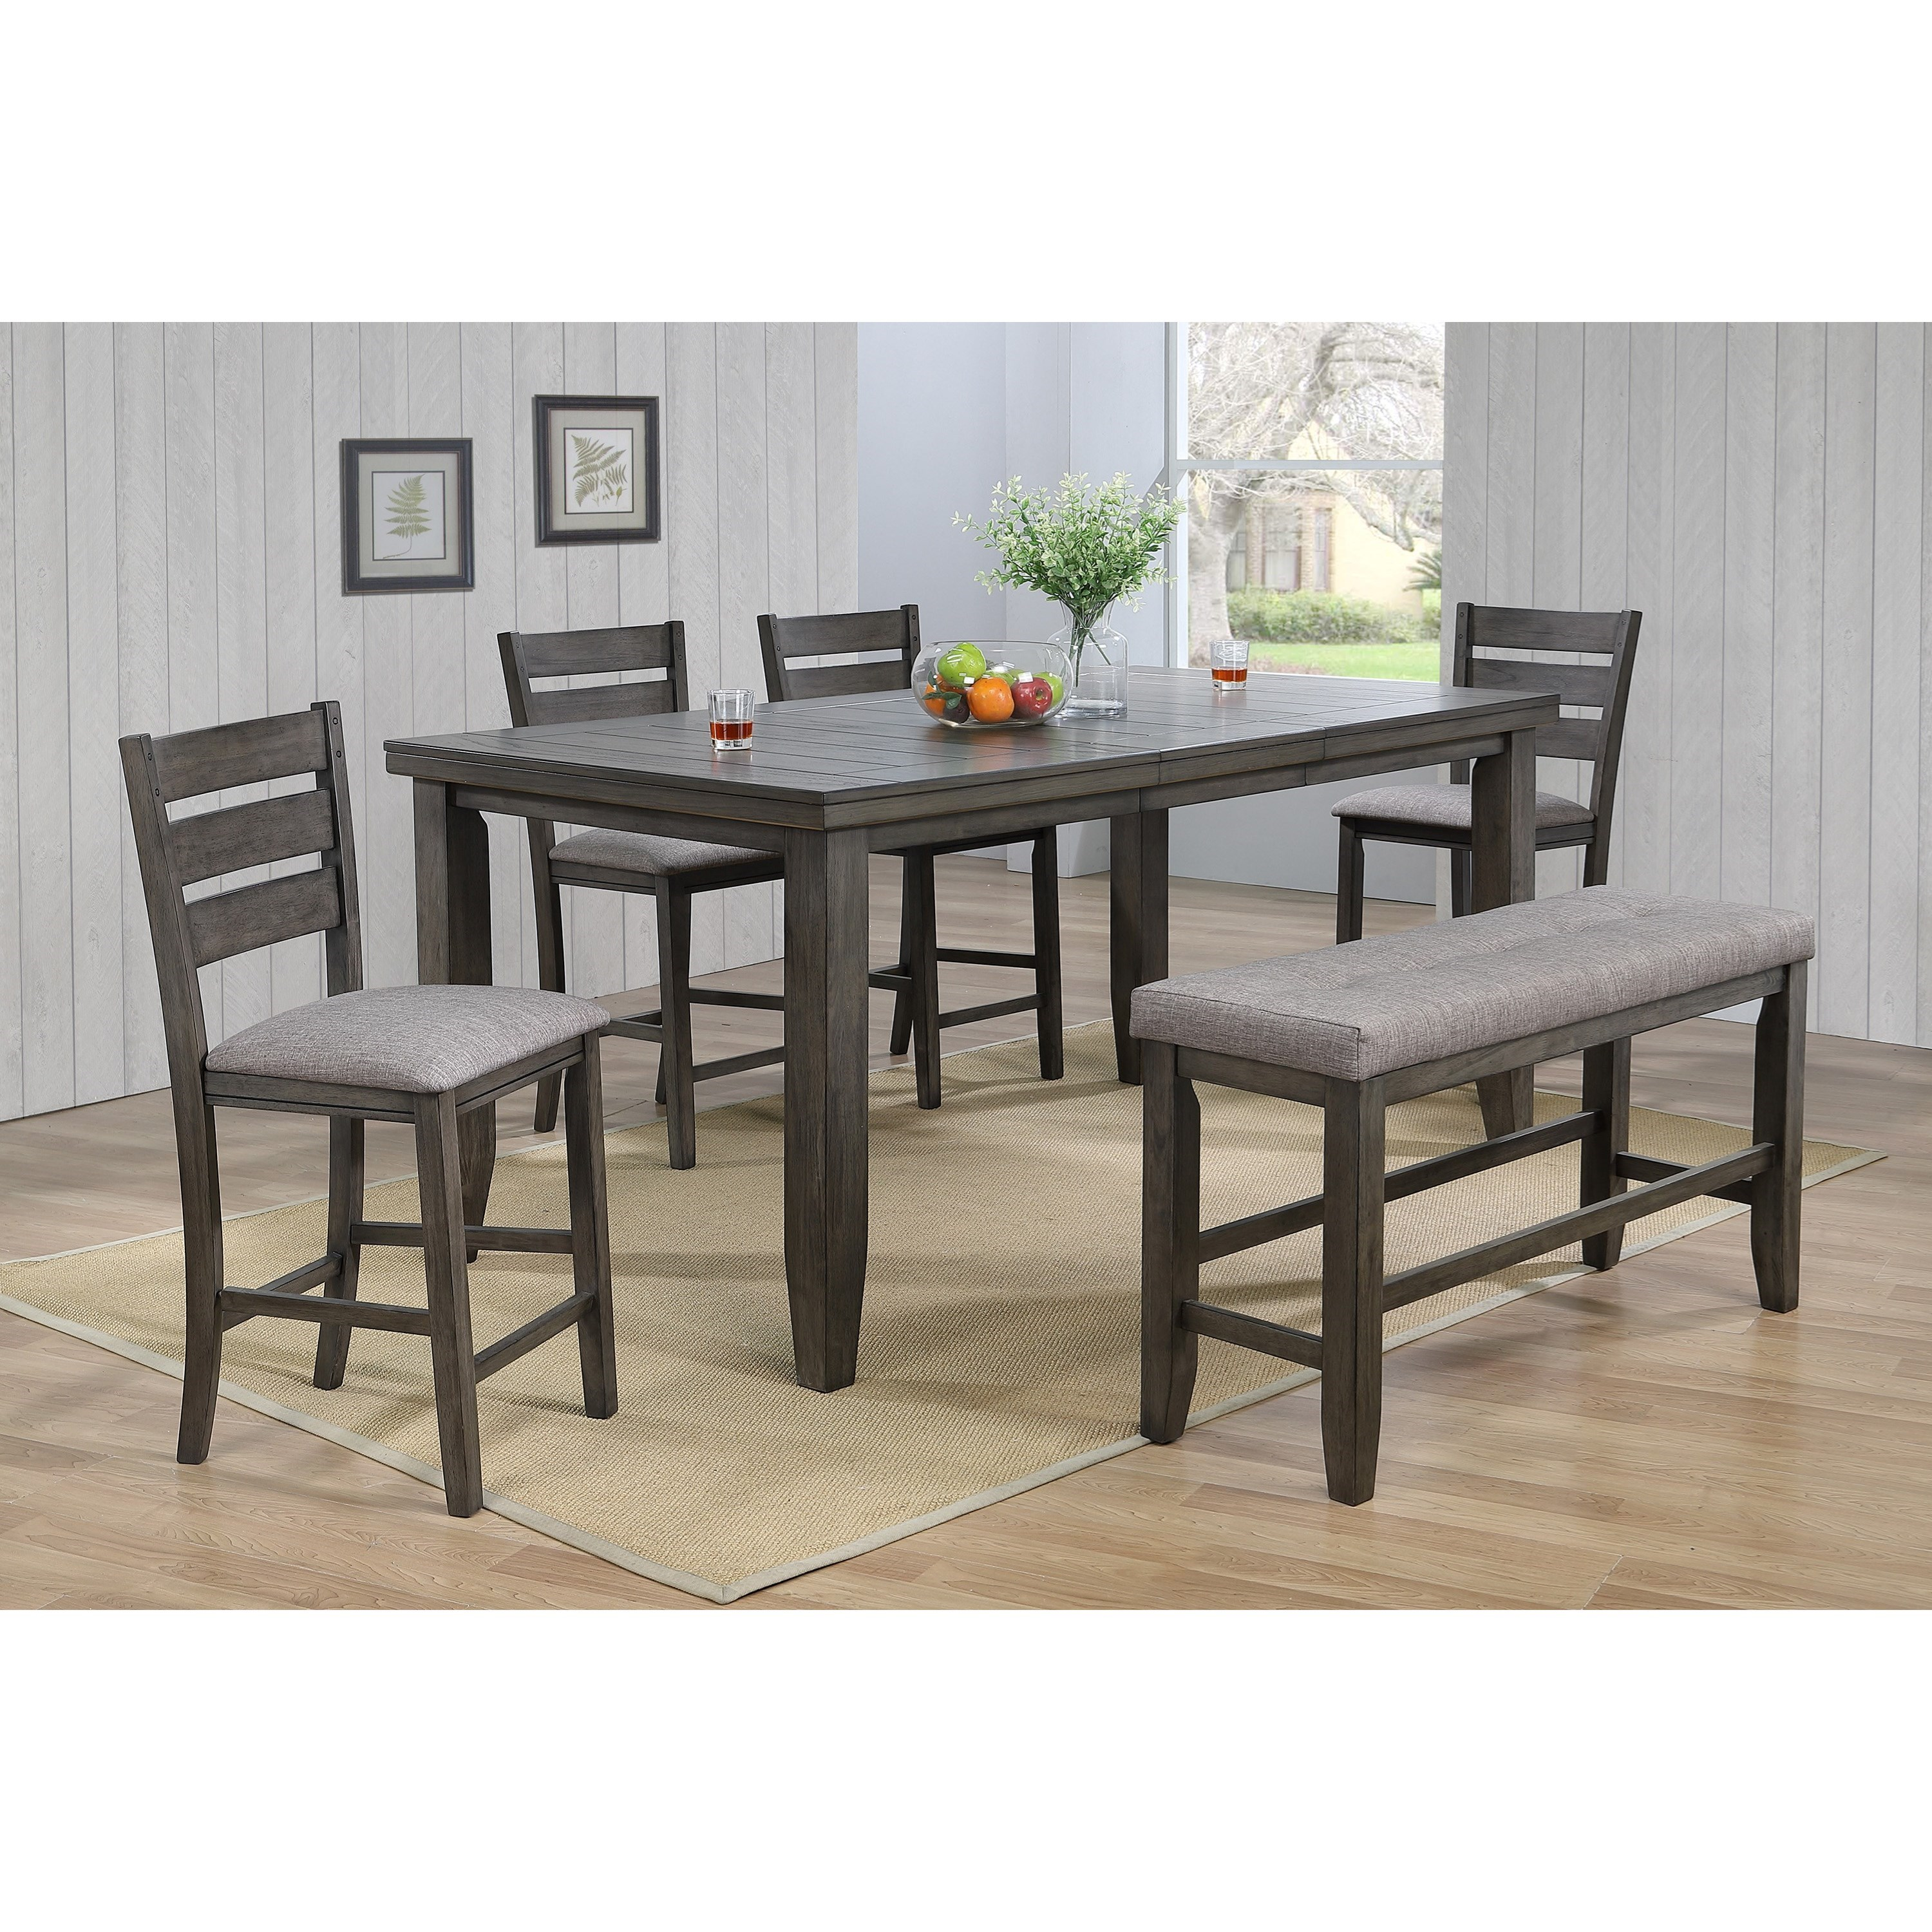 Peachy Bardstown Pub Table Set With Bench Gmtry Best Dining Table And Chair Ideas Images Gmtryco